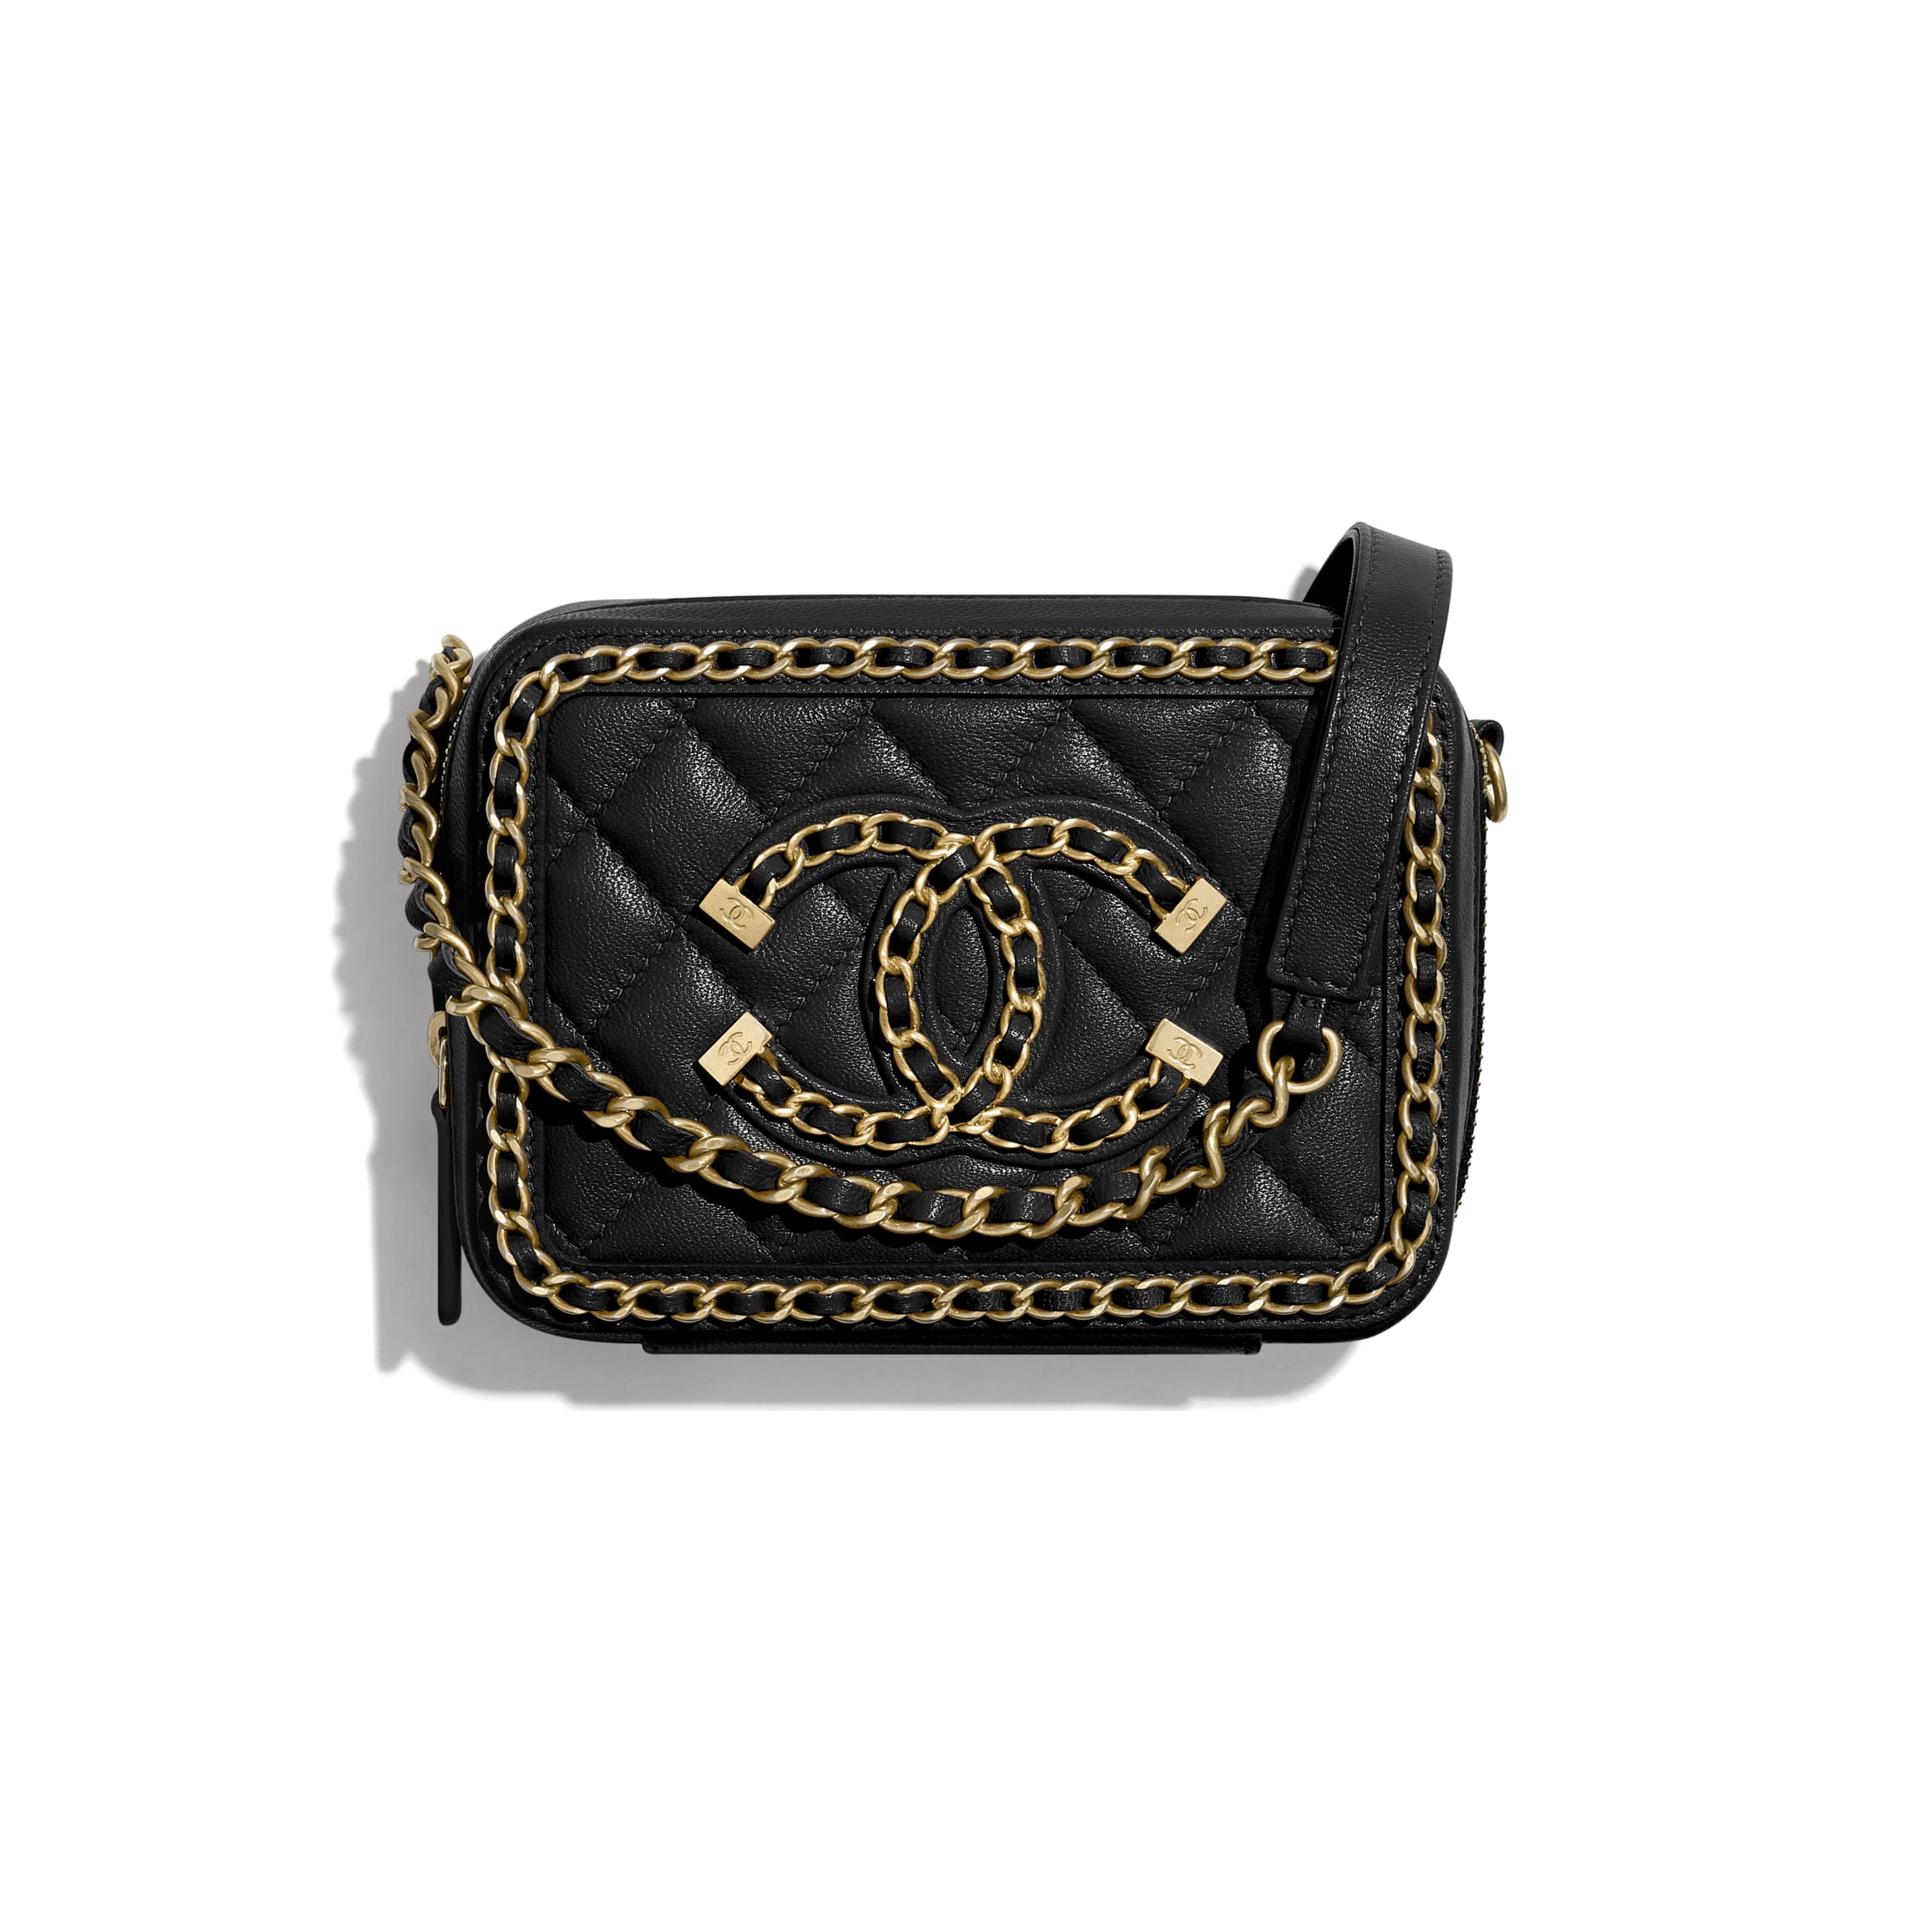 Clutch With Chain - Black - Goatskin & Gold-Tone Metal - CHANEL - Default view - see standard sized version